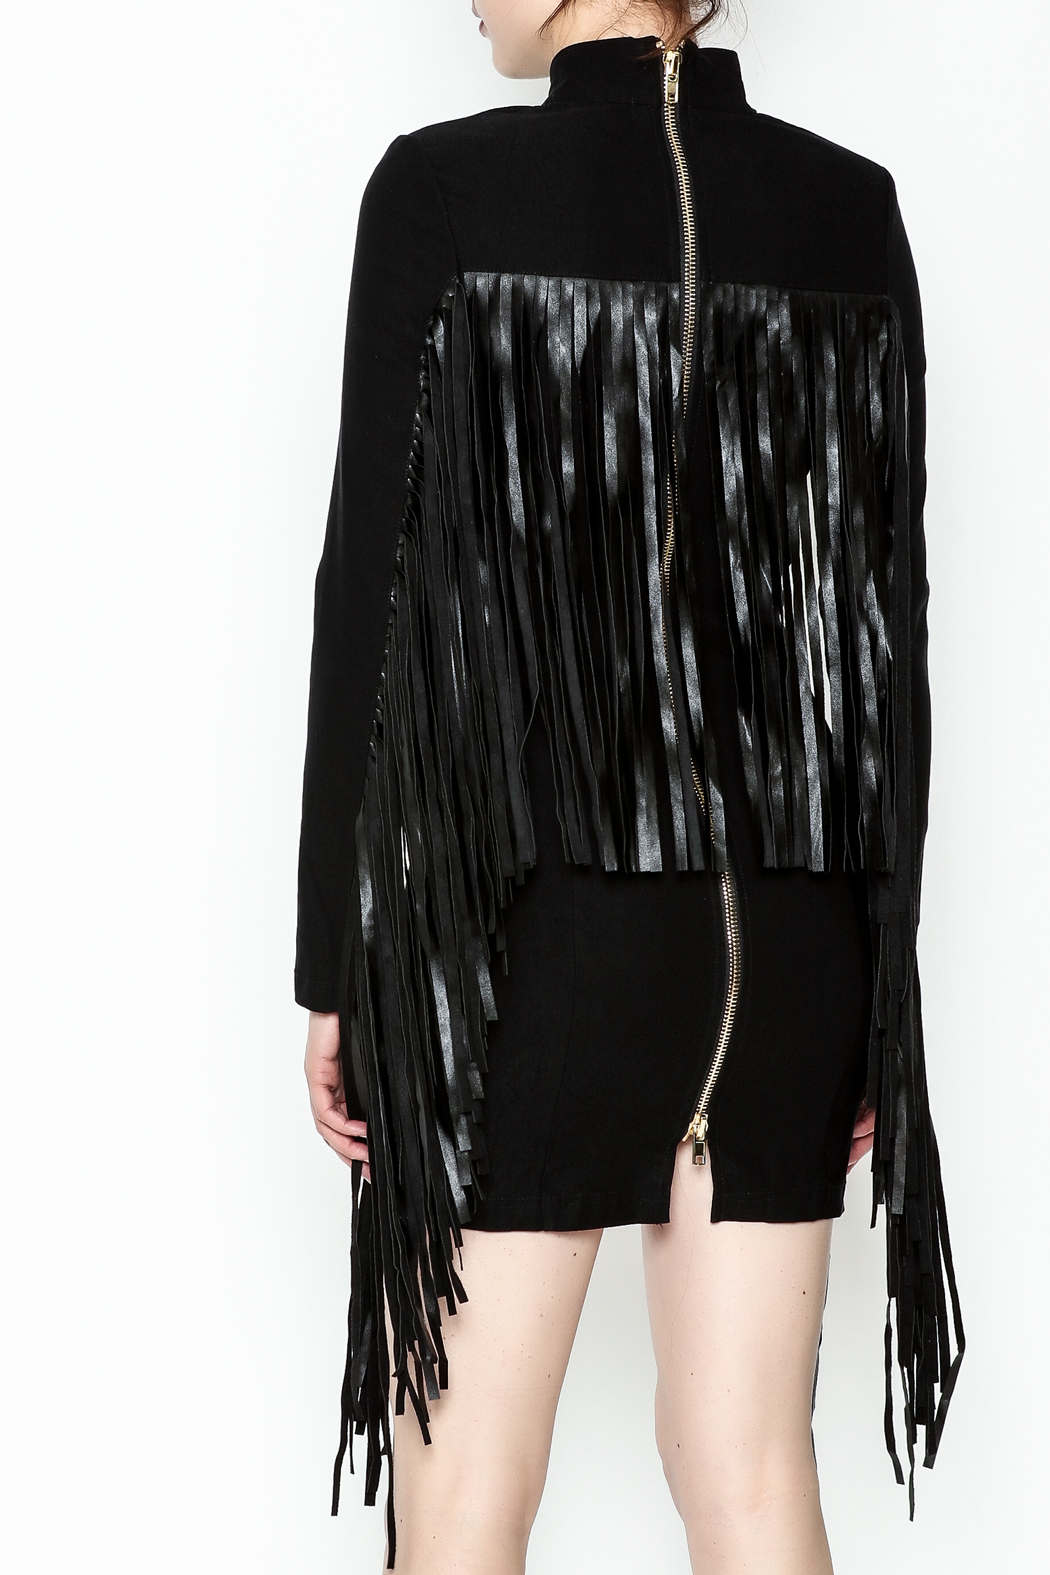 LIFTED Boutique Black Fringe Dress - Back Cropped Image